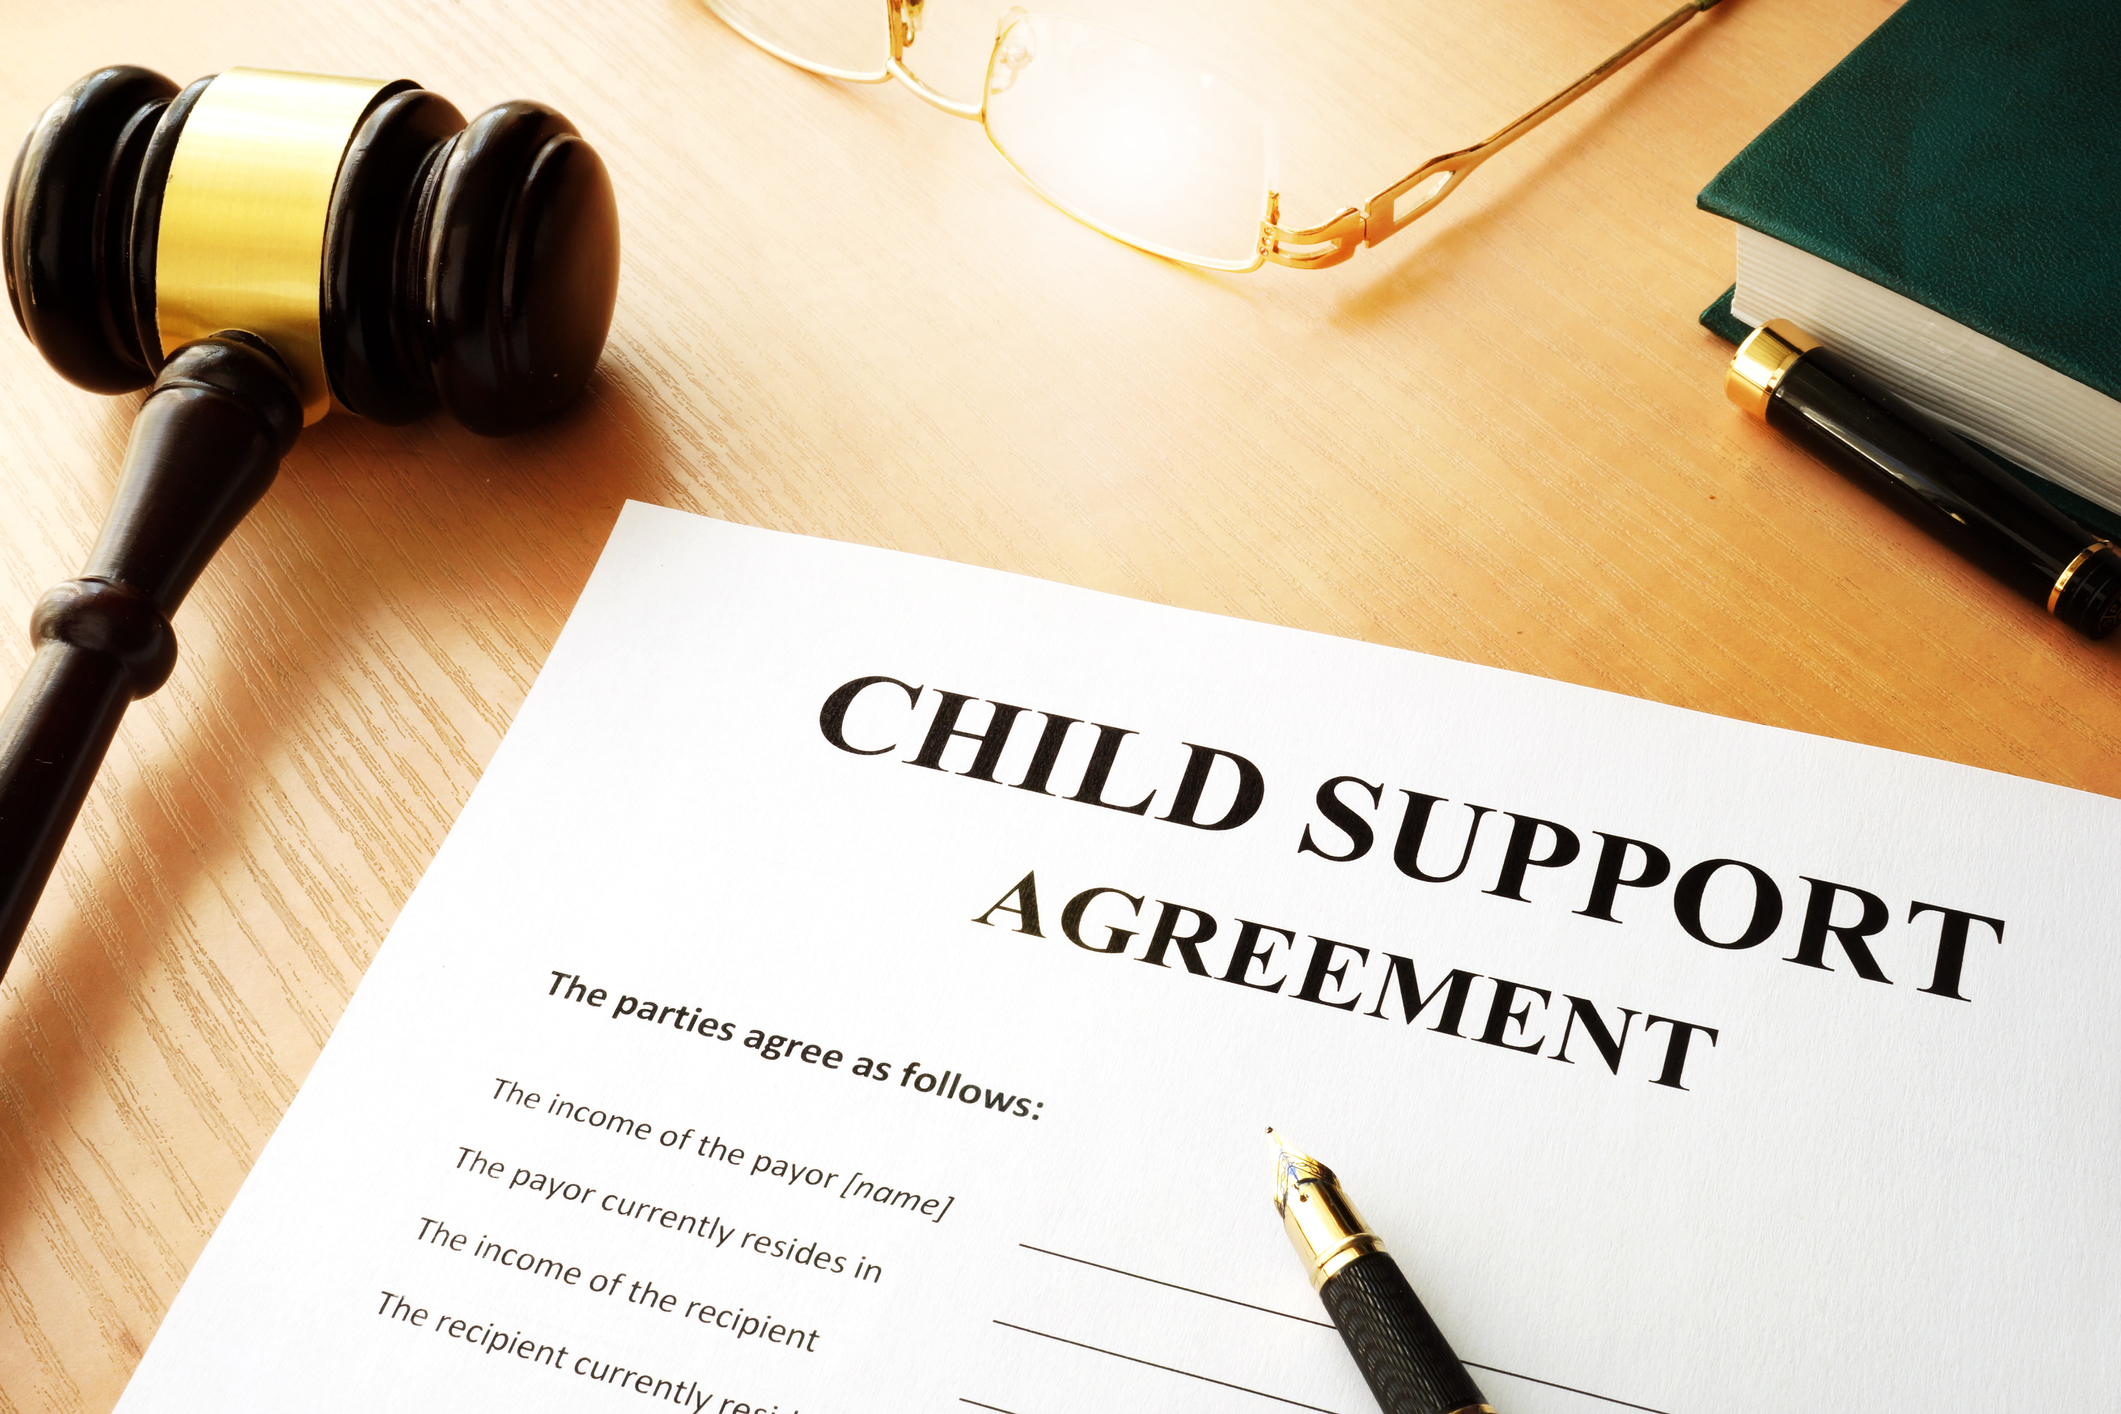 When your child support is overdue, private investigators can help you build a strong case